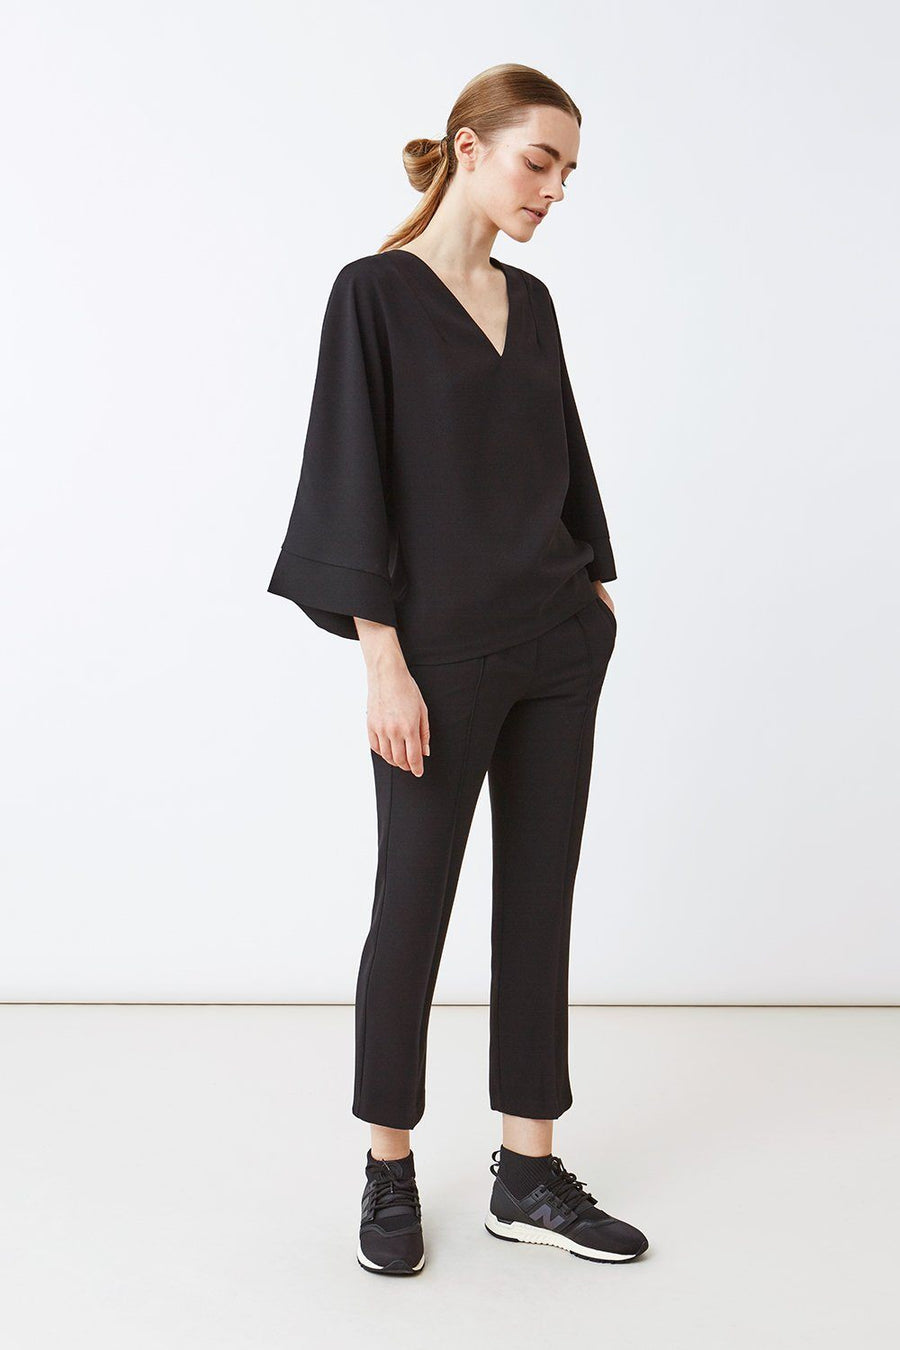 BAYLIE TOP - BLACK